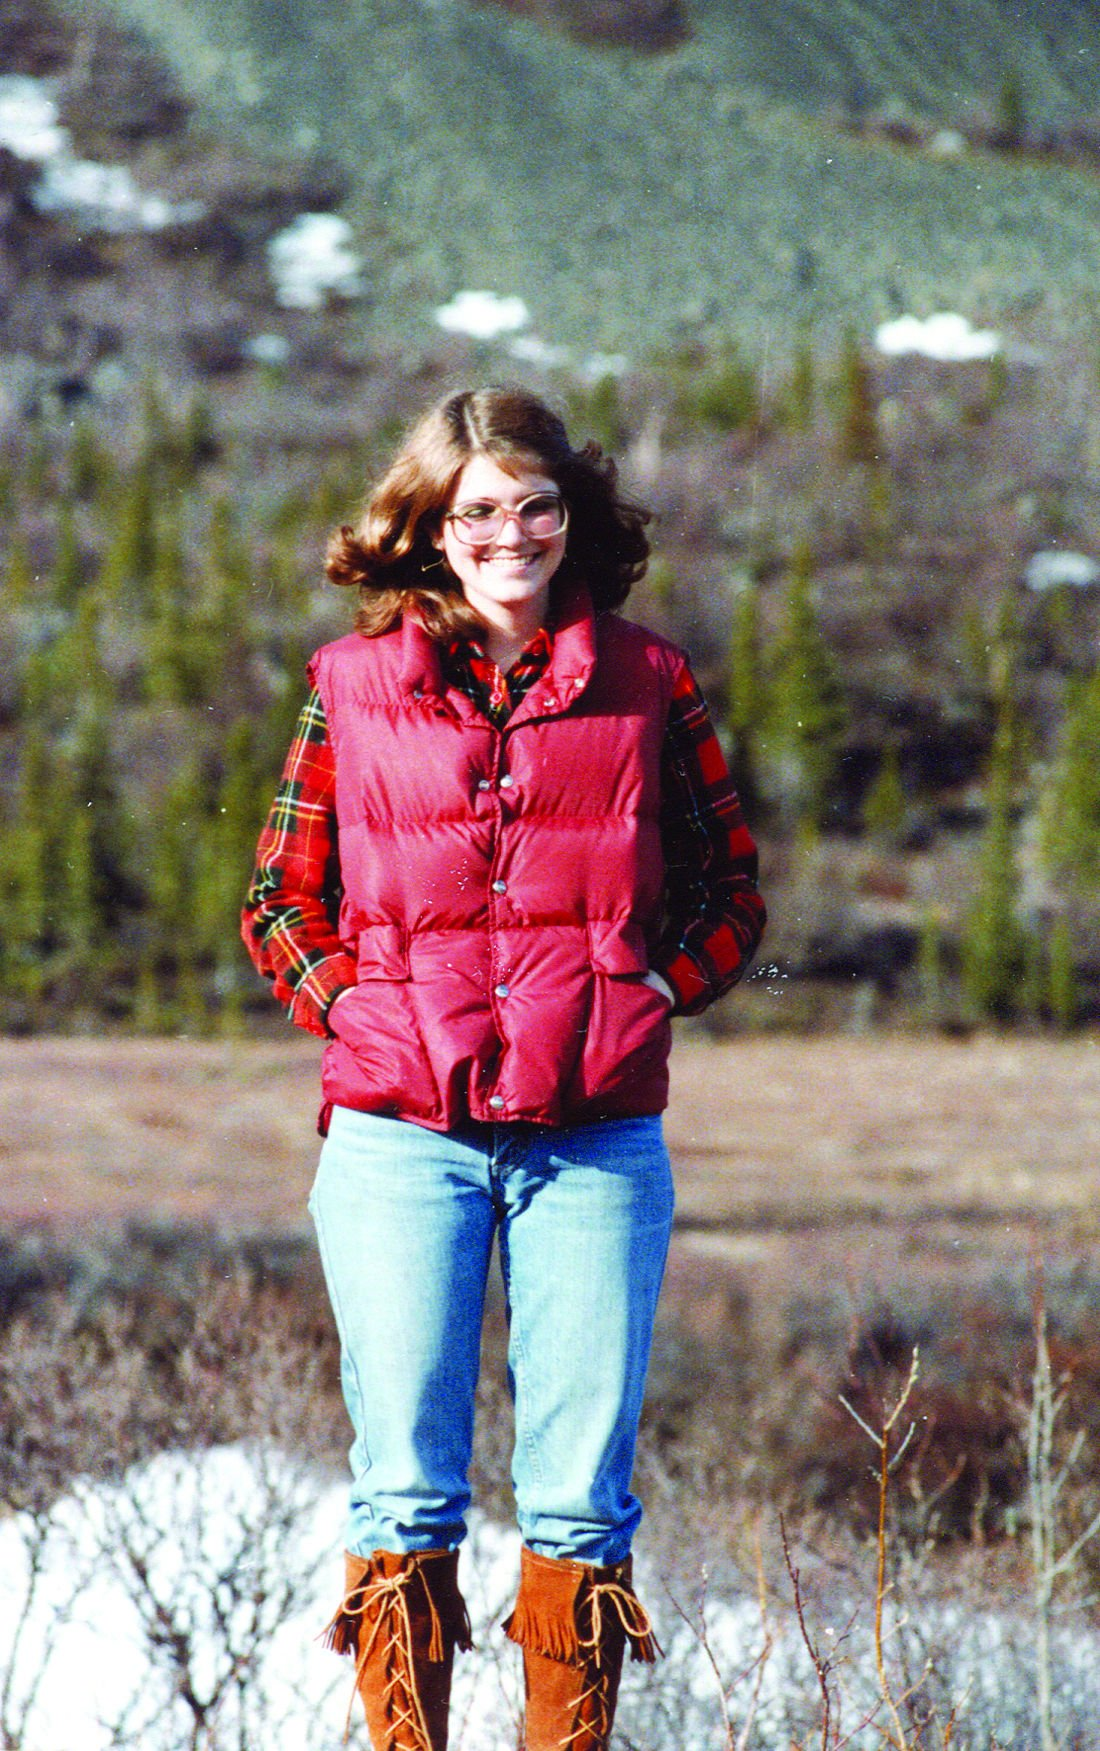 Unsolved 1983 double homicide in Fairbanks still fresh for